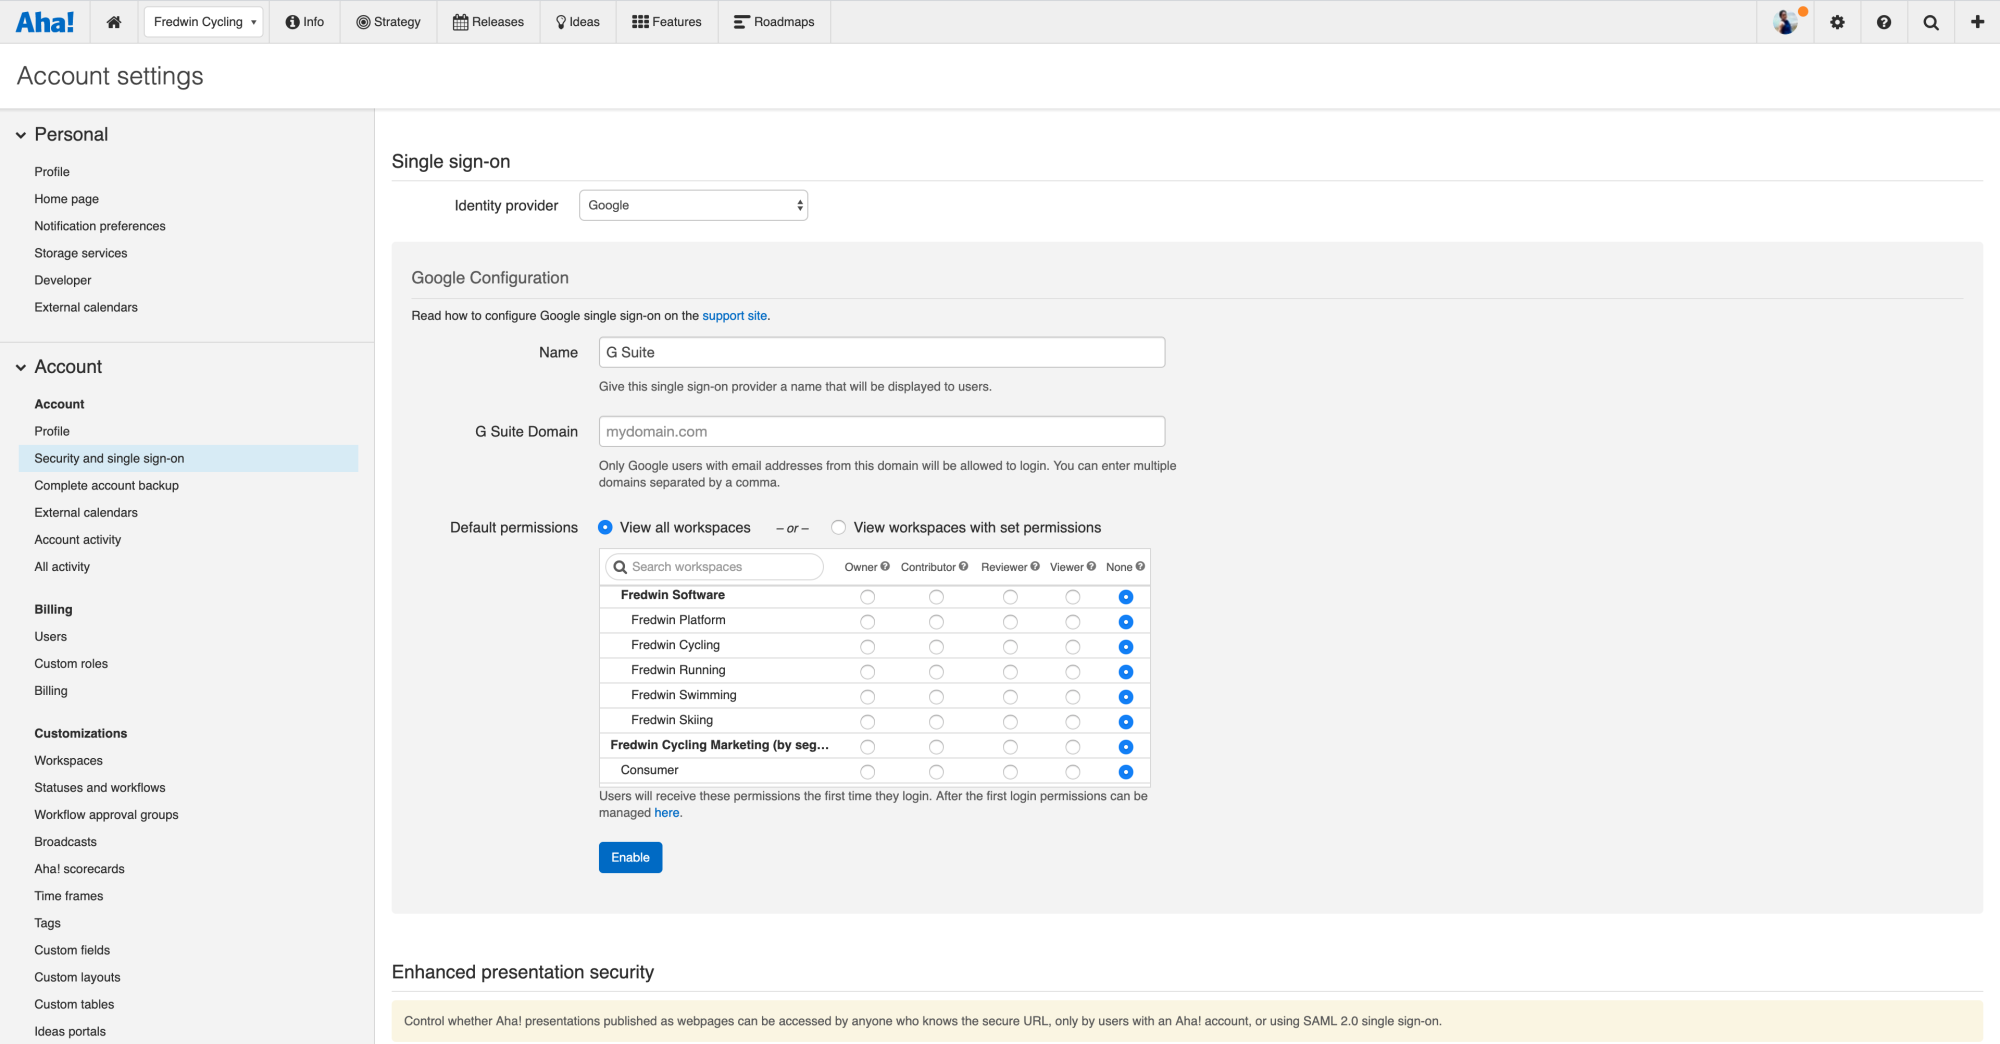 Configure single sign-on with G Suite in your Aha! account settings.